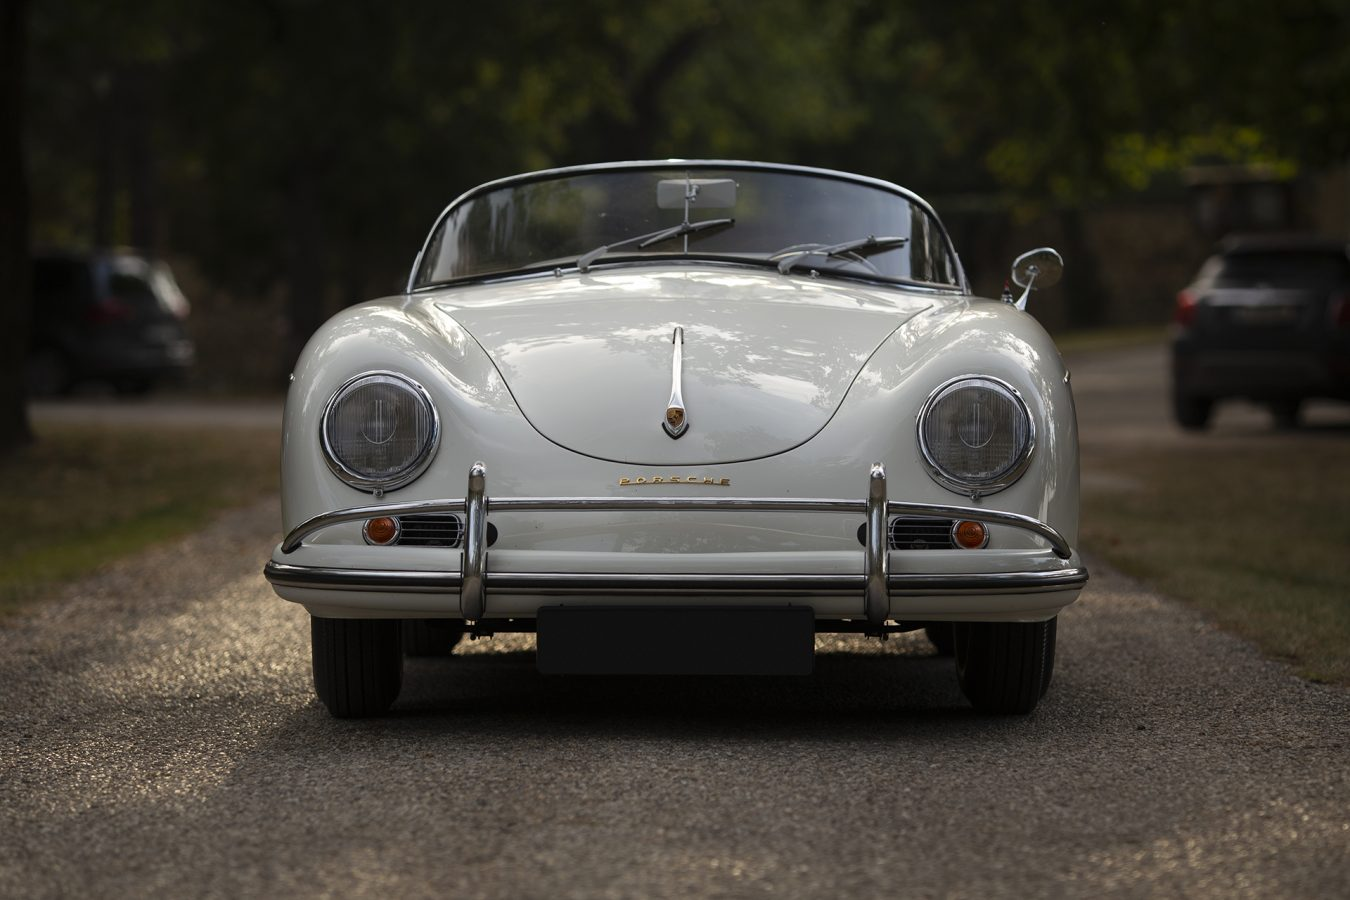 Weißer Porsche 356 Speedster von Vehicle Experts